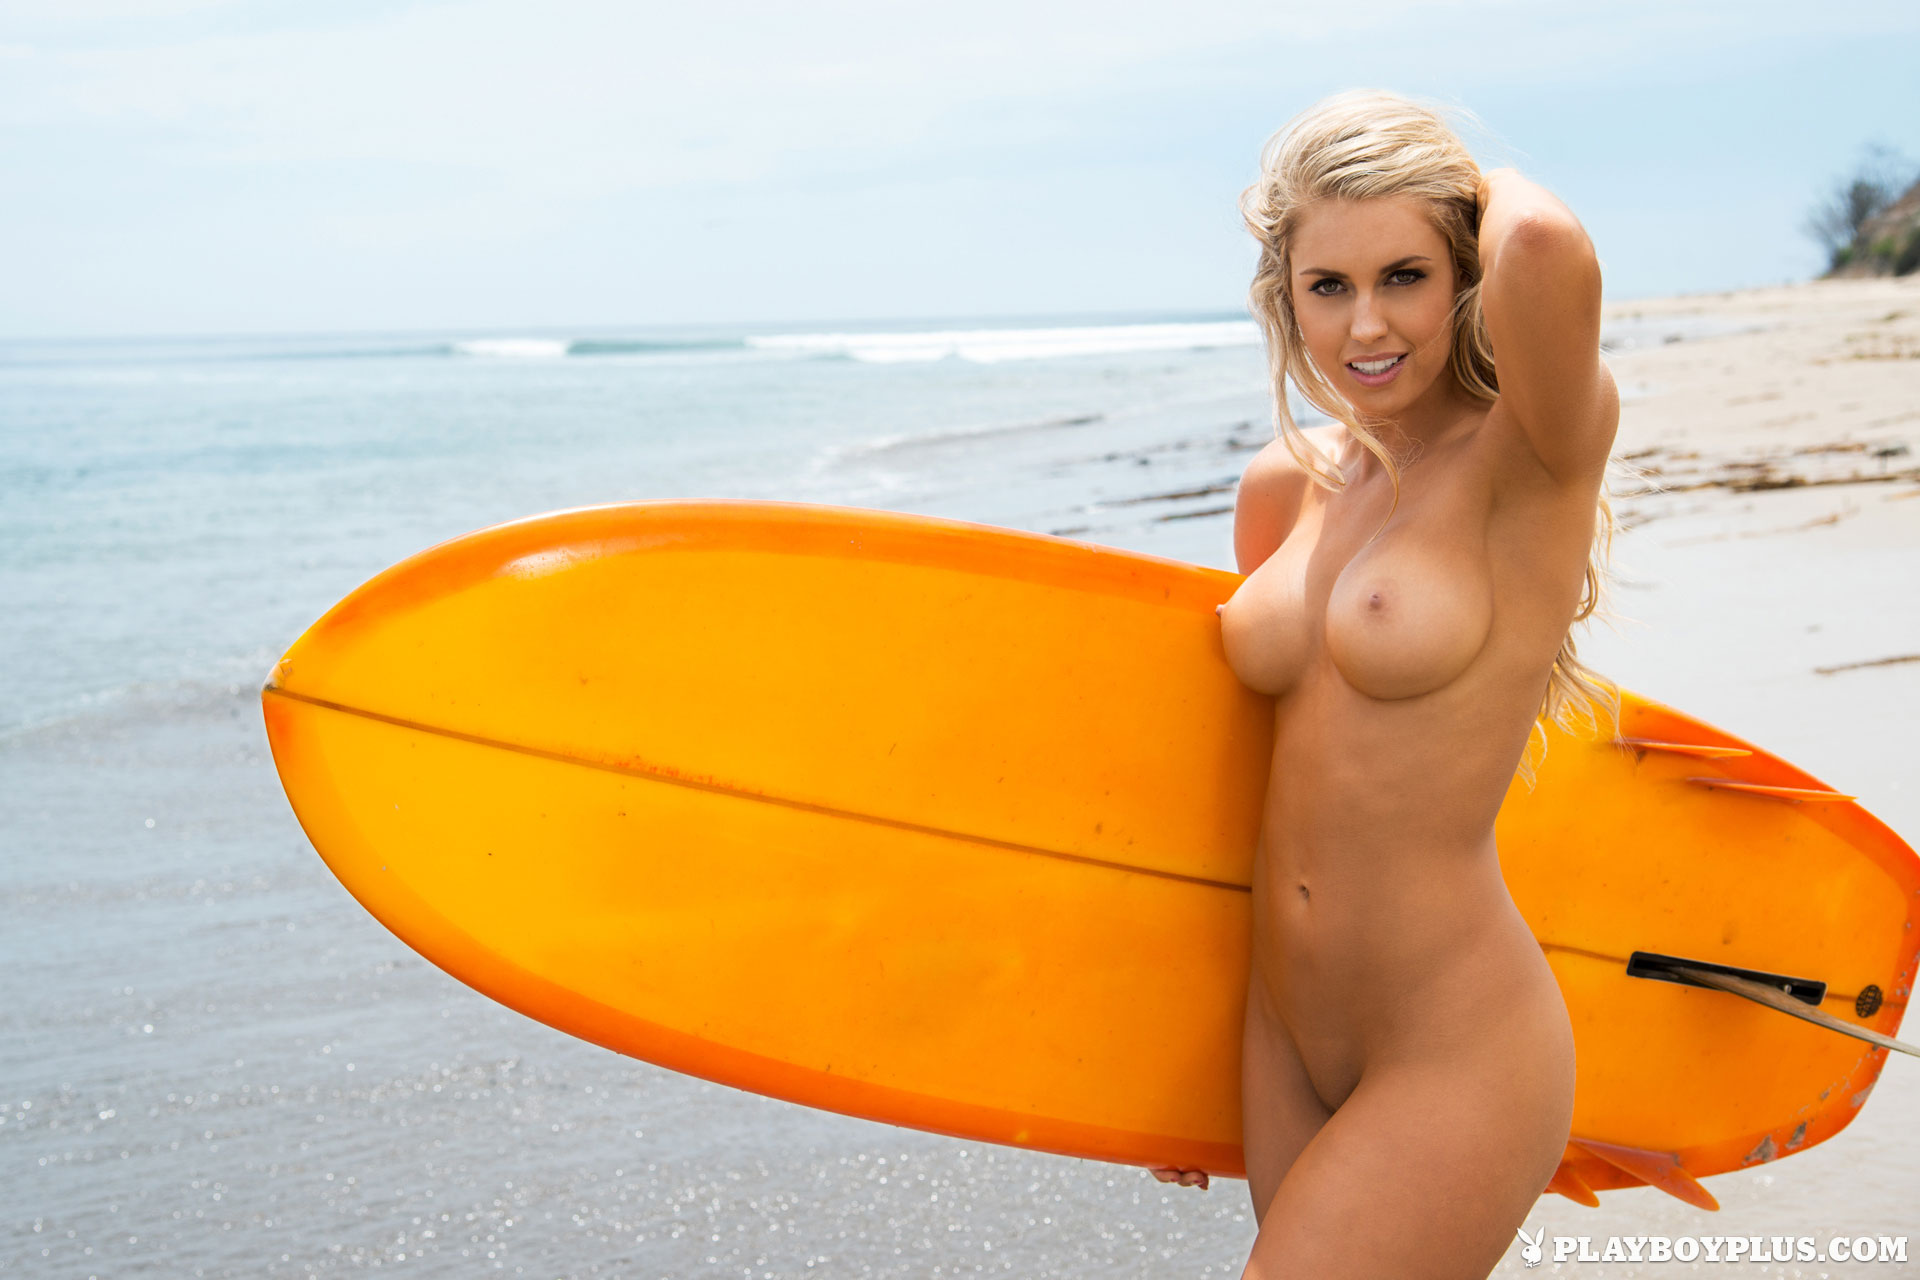 Surfer girls naked with very long hair sexy pic